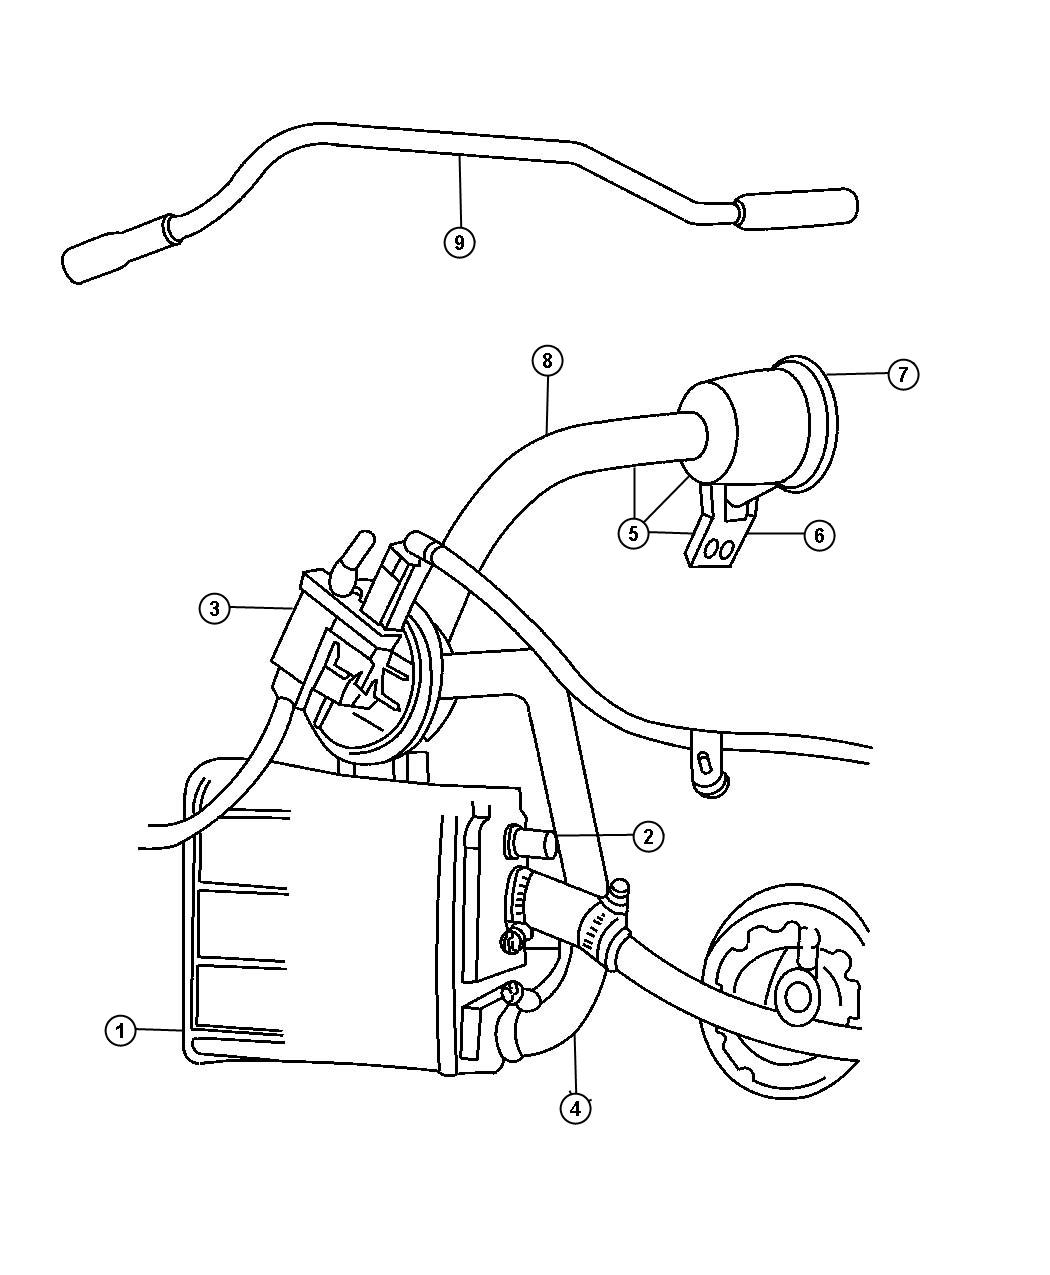 06 Pontiac G6 Transmission Wiring Diagrams Saturn Astra